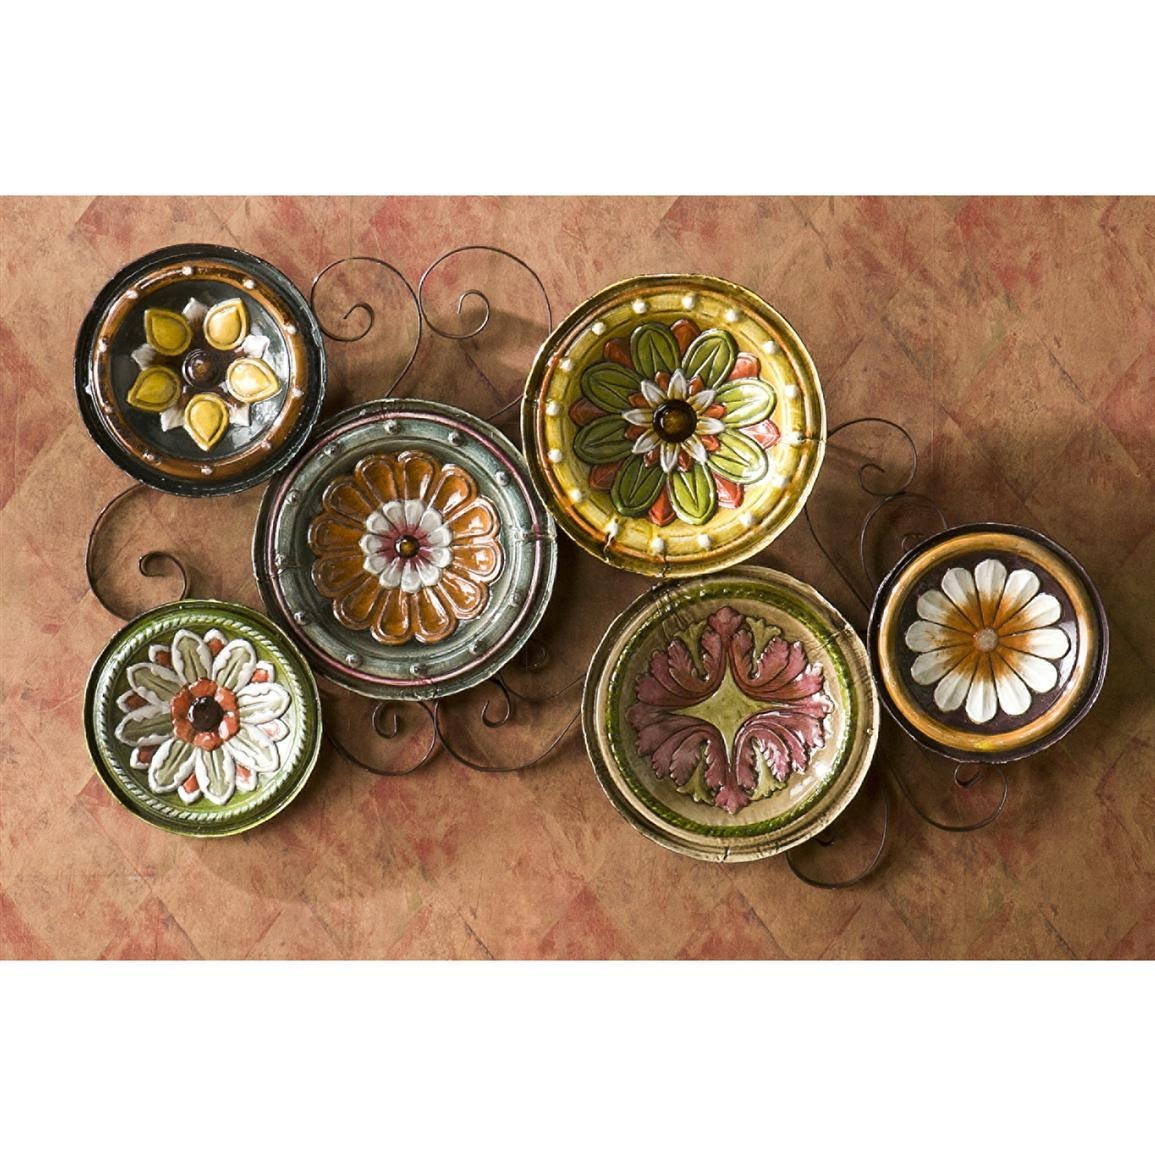 Wall Decorative Plates : Decorative Wall Plates For Hangings – The Within Italian Ceramic Wall Art (Image 20 of 20)